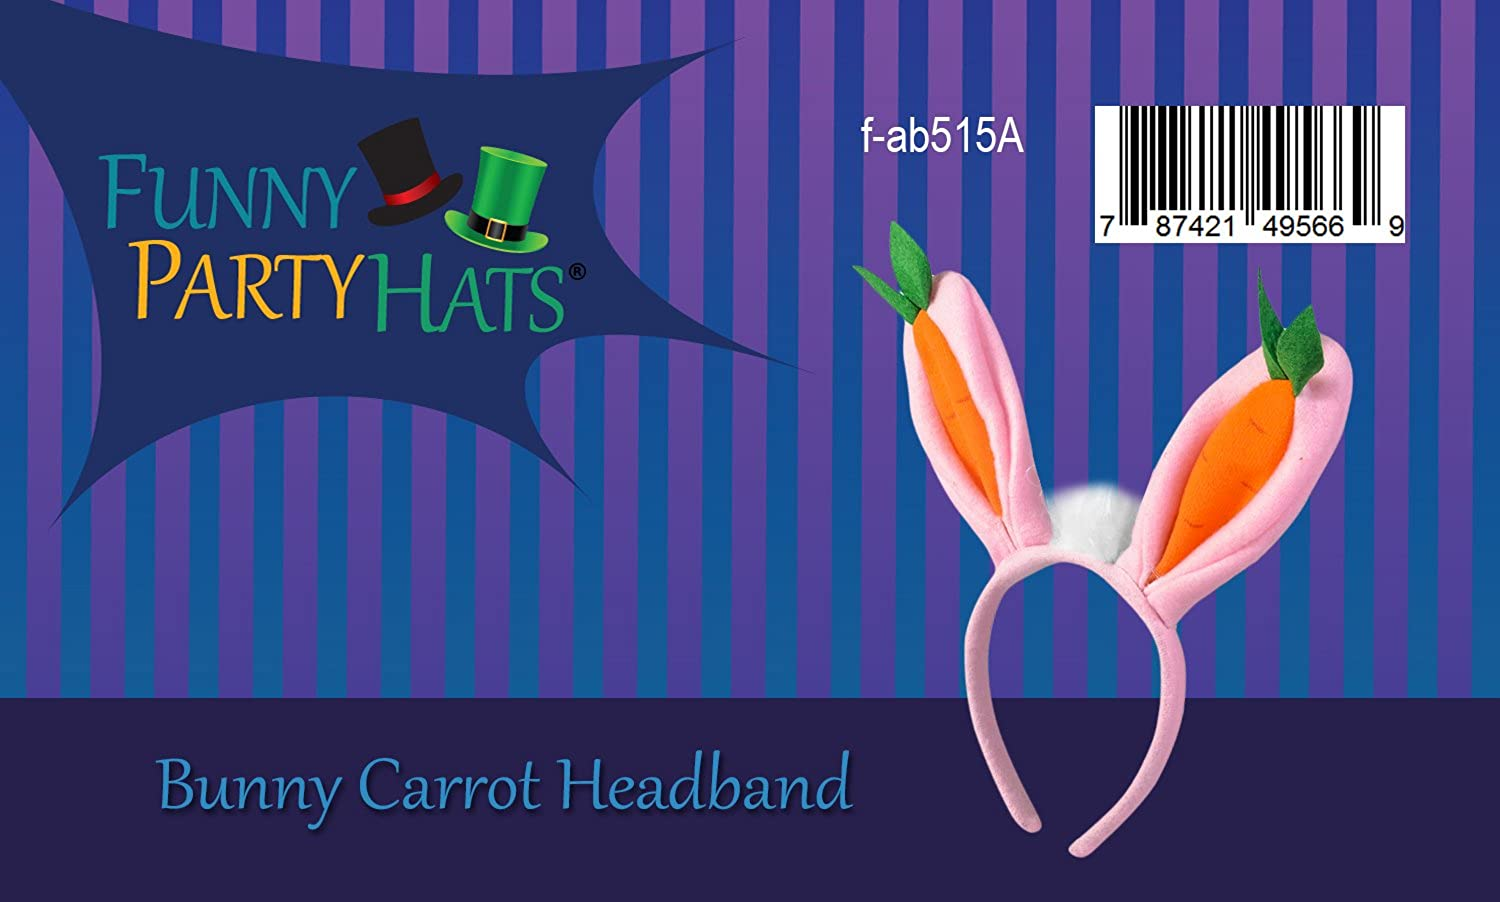 Amazon.com  Bunny Headband - Bunny Ears – Bopper Headbands - Carrot Bunny  Ears - Easter Bunny Ears by Funny Party Hats  Clothing 7595d3f2ae1a